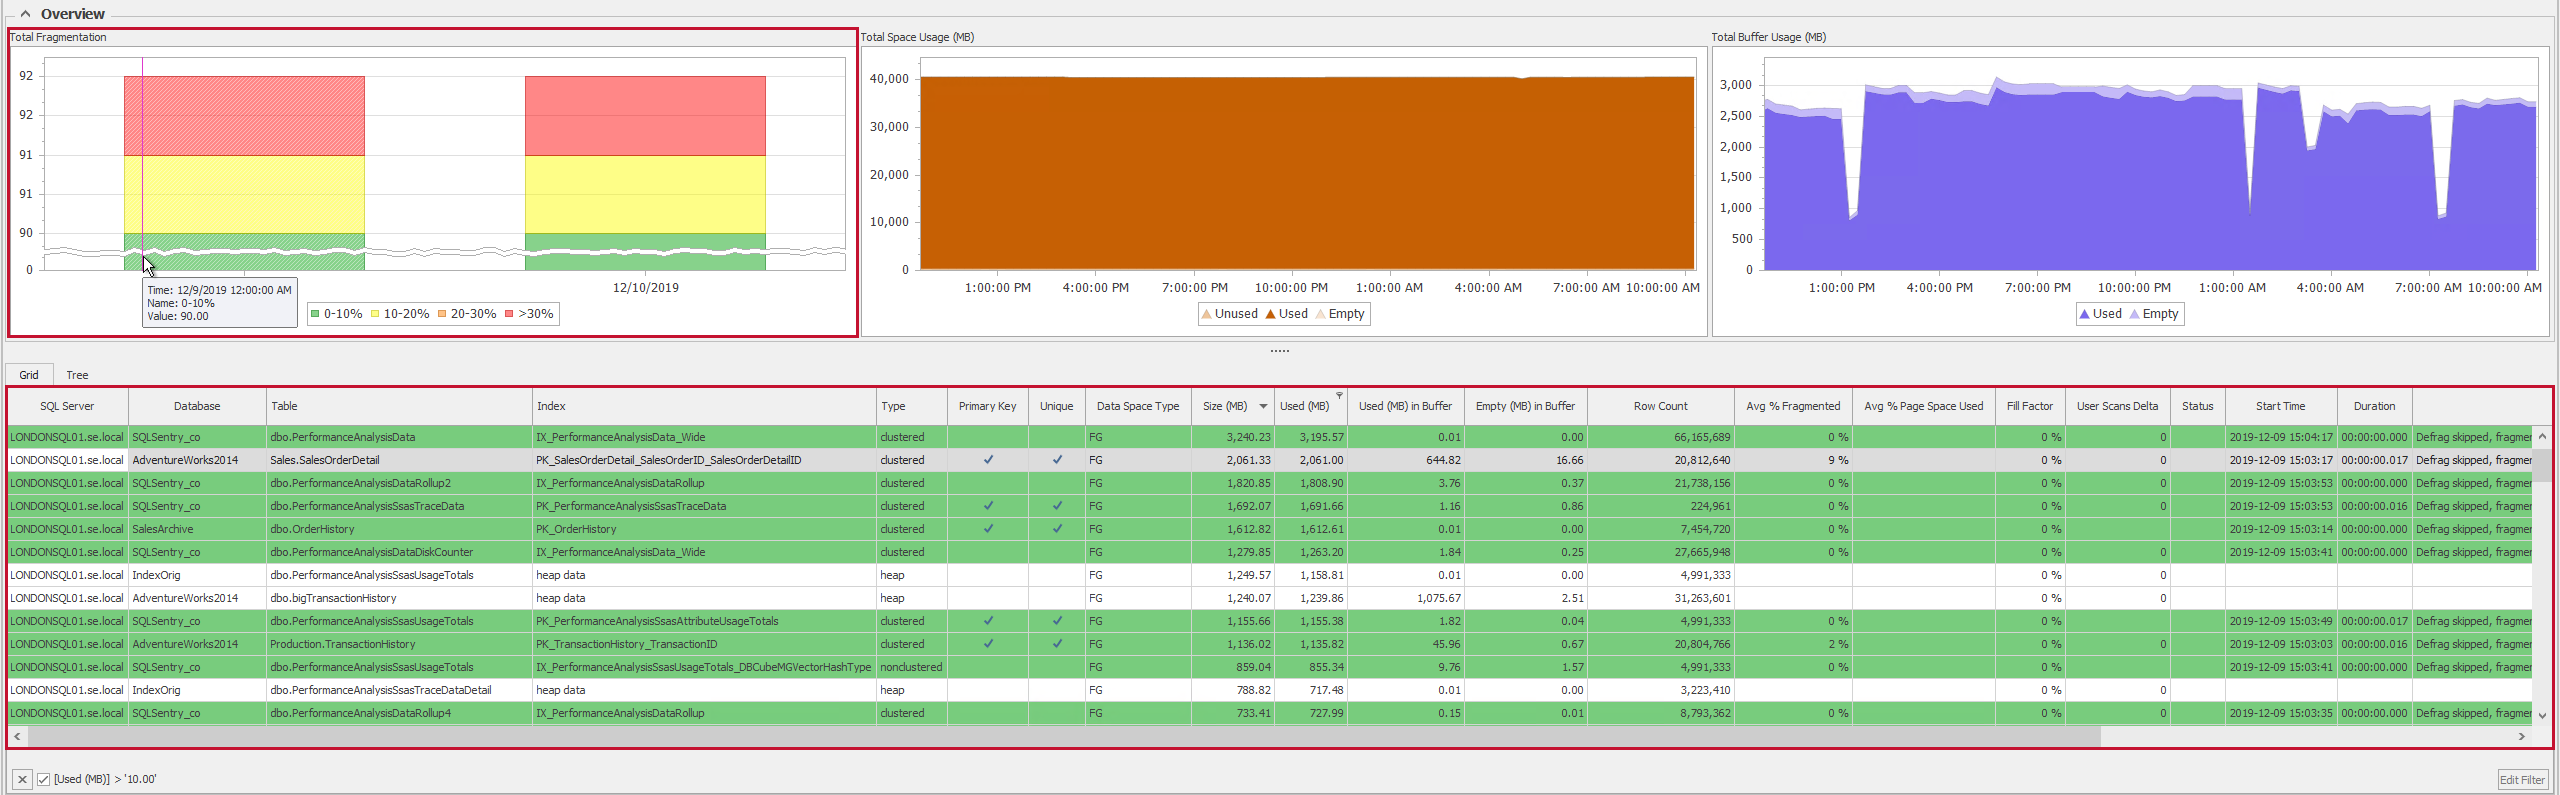 SentryOne Indexes tab select metric in Total Fragmentation Chart to see the corresponding Grid View